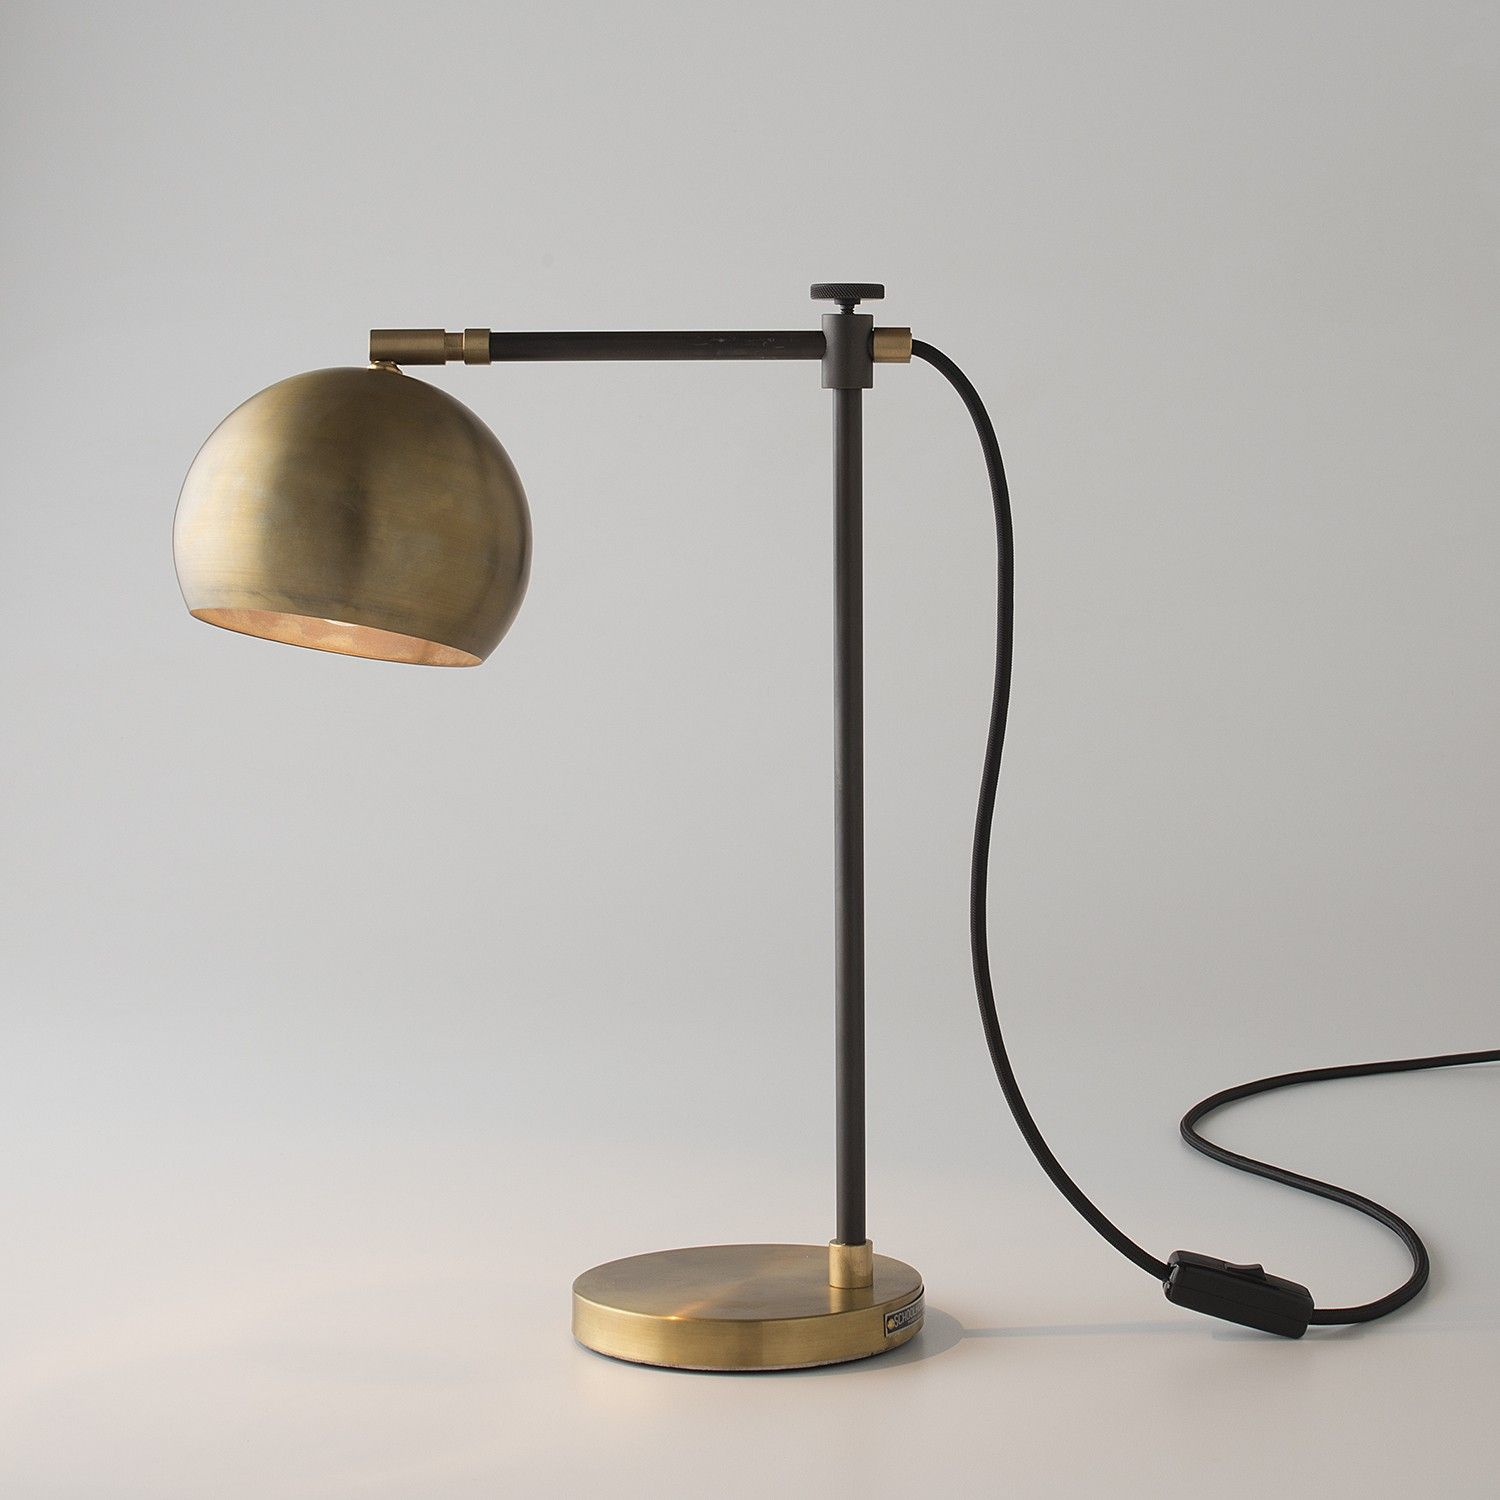 Table lamps for reading in bed - Miles Desk Lamp